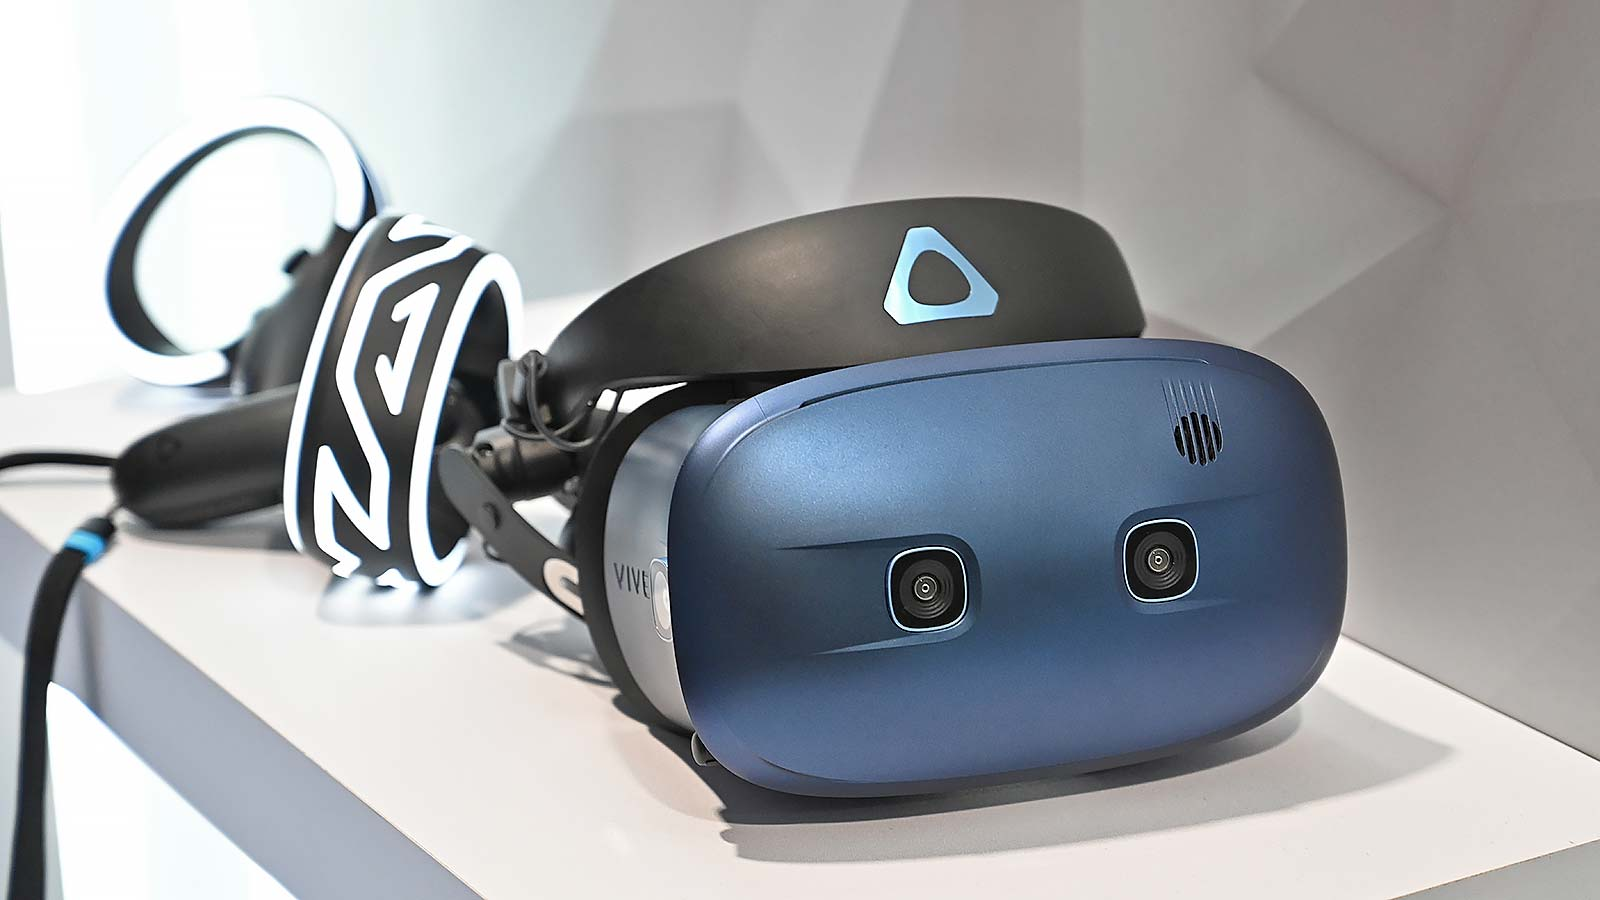 Here's a first look at the Vive Cosmos. Sadly, any concrete details about it are quite sparse.